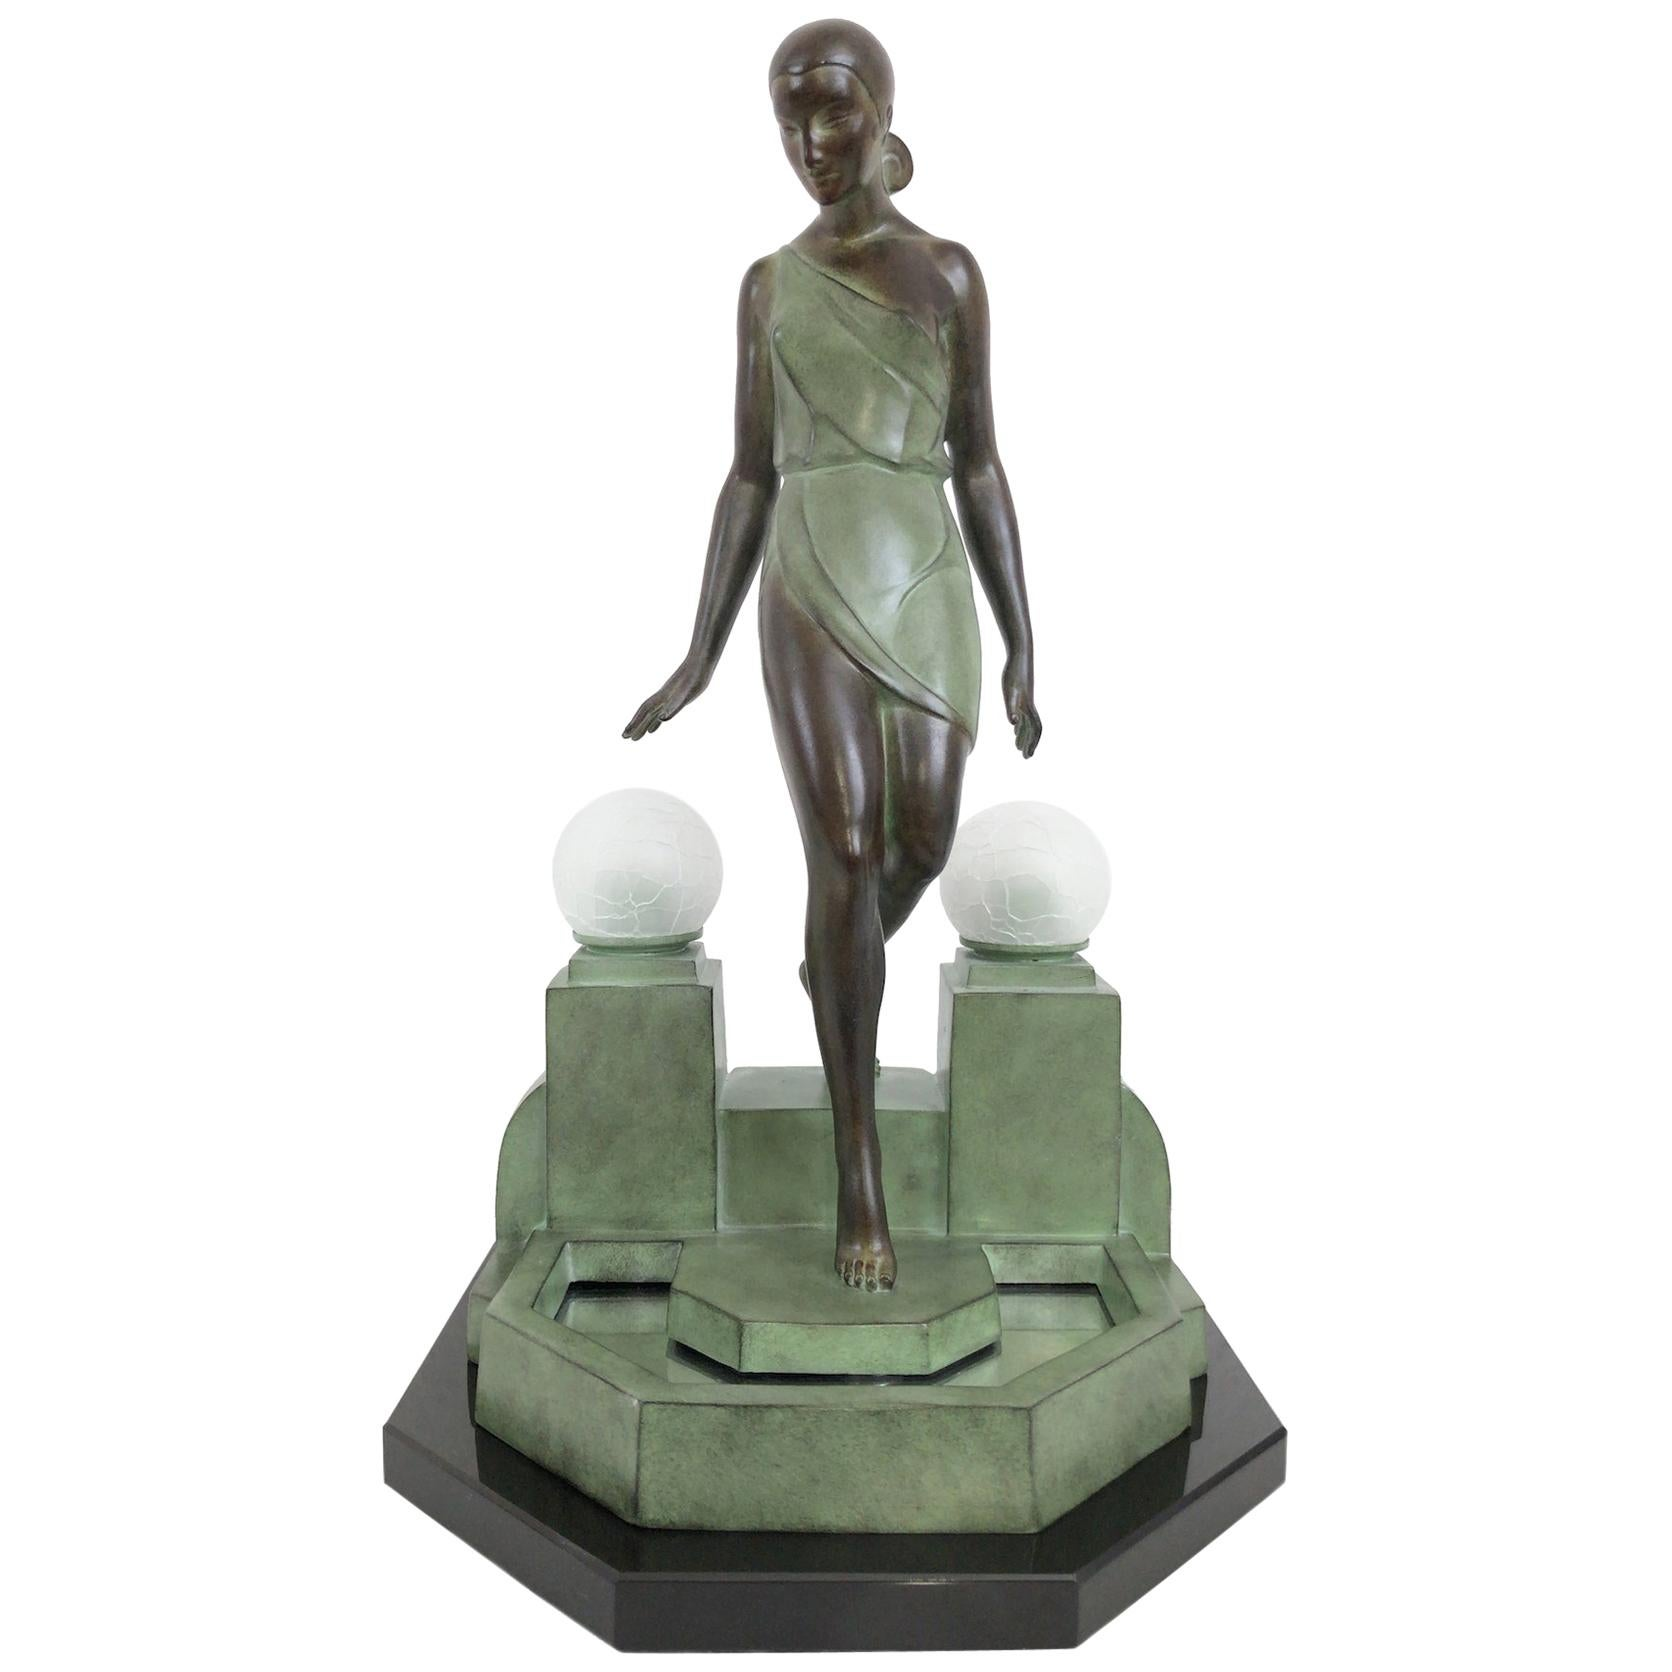 French Art Deco Sculpture-Lamp Nausicaa by Pierre Le Faguays and Max Le Verrier